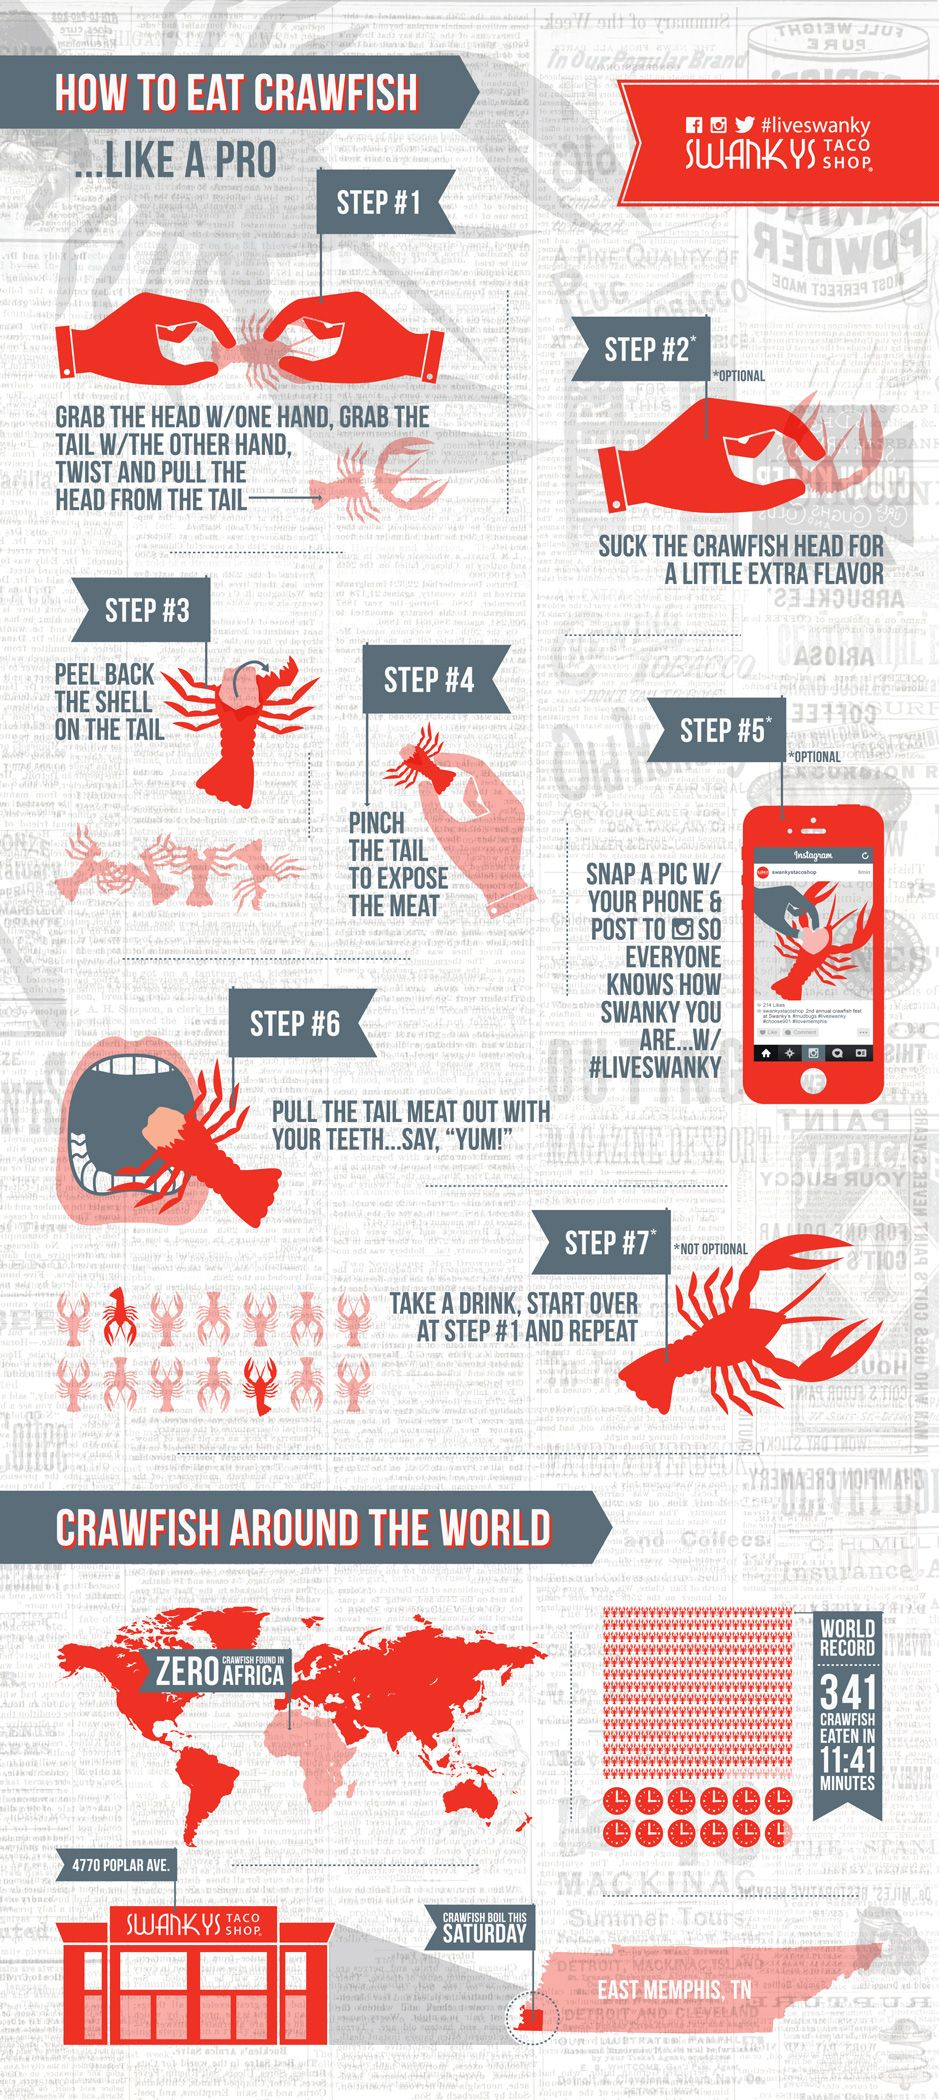 How To Eat Crawfish (like A Pro)graphic For Swanky's Taco Shop In  Memphis